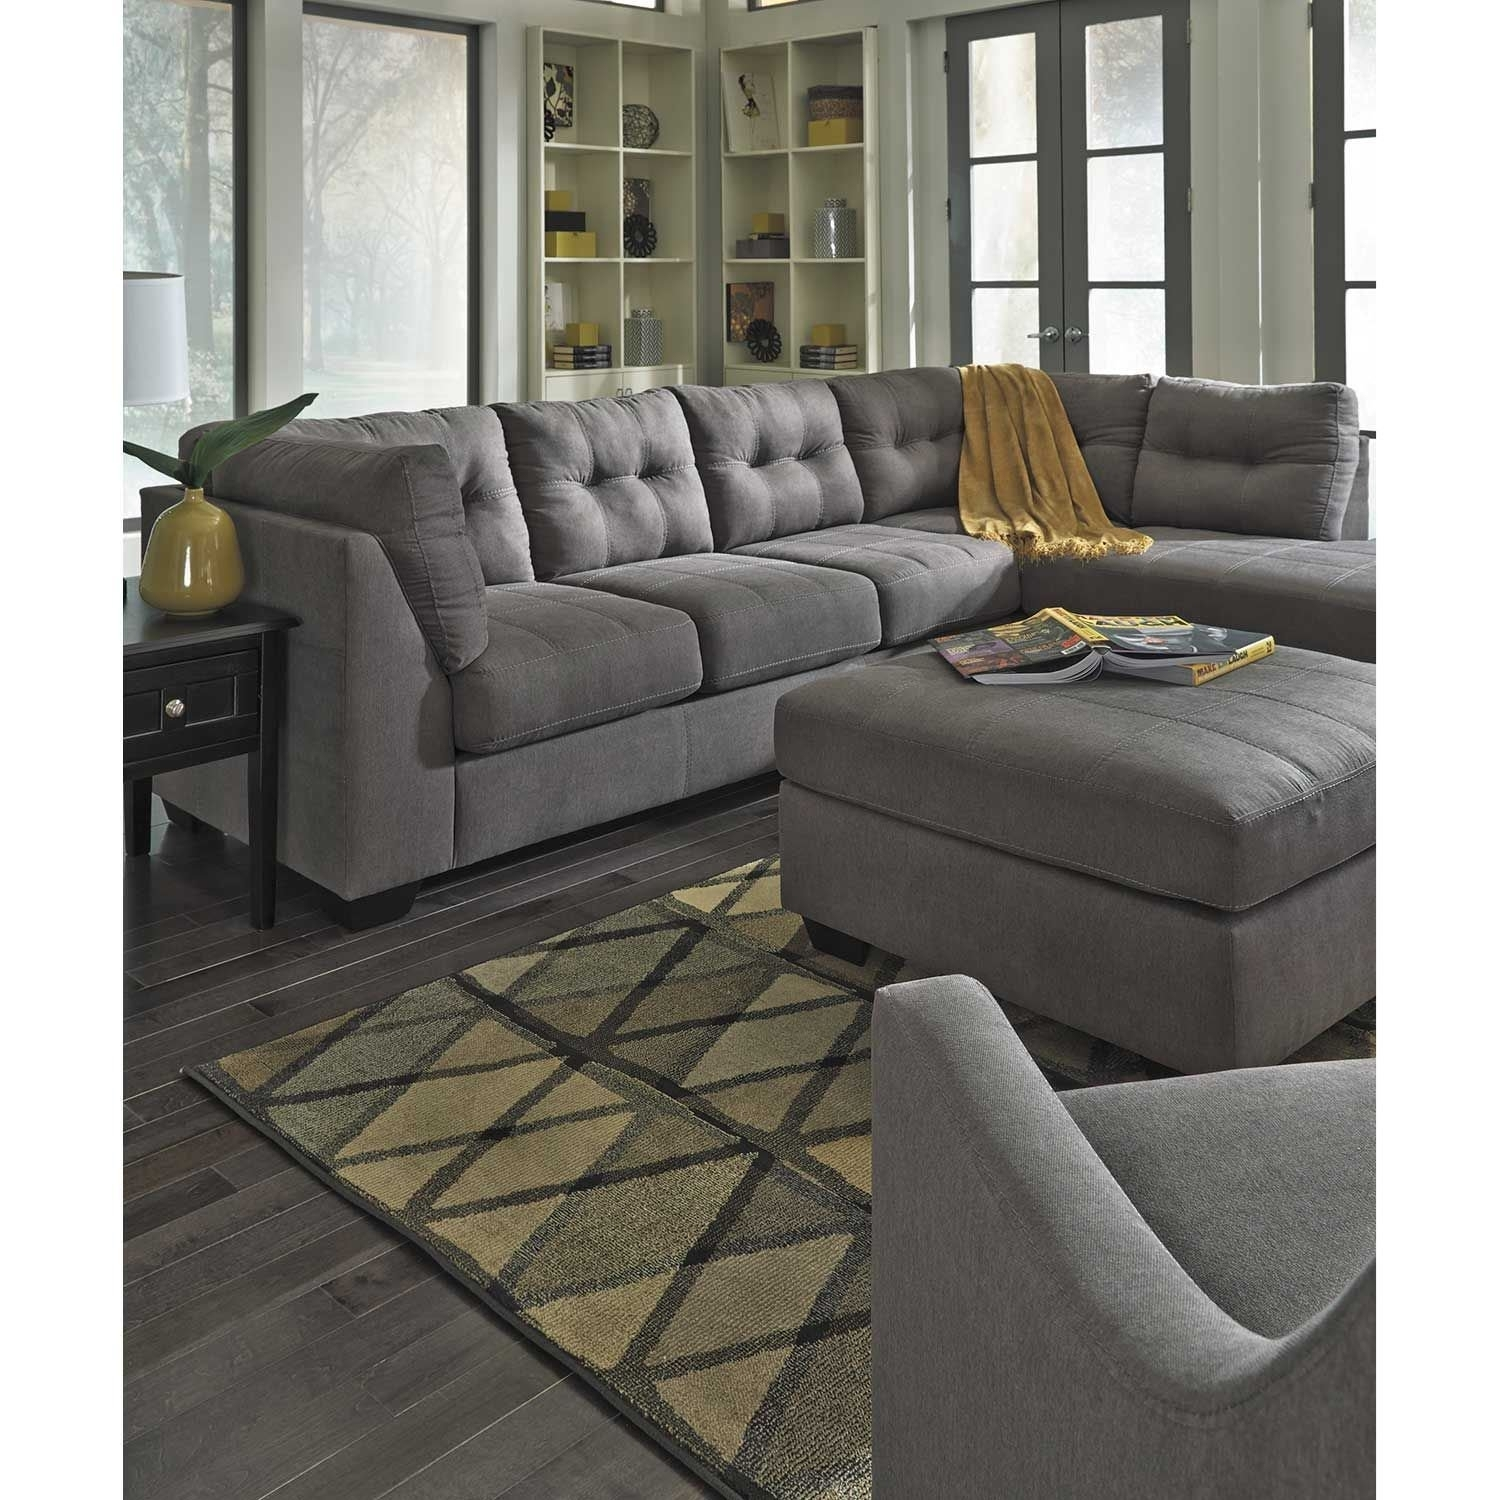 Maier Charcoal 2 Piece Sectional With Laf Chaise | 4520016/67 With Regard To Arrowmask 2 Piece Sectionals With Laf Chaise (View 15 of 25)